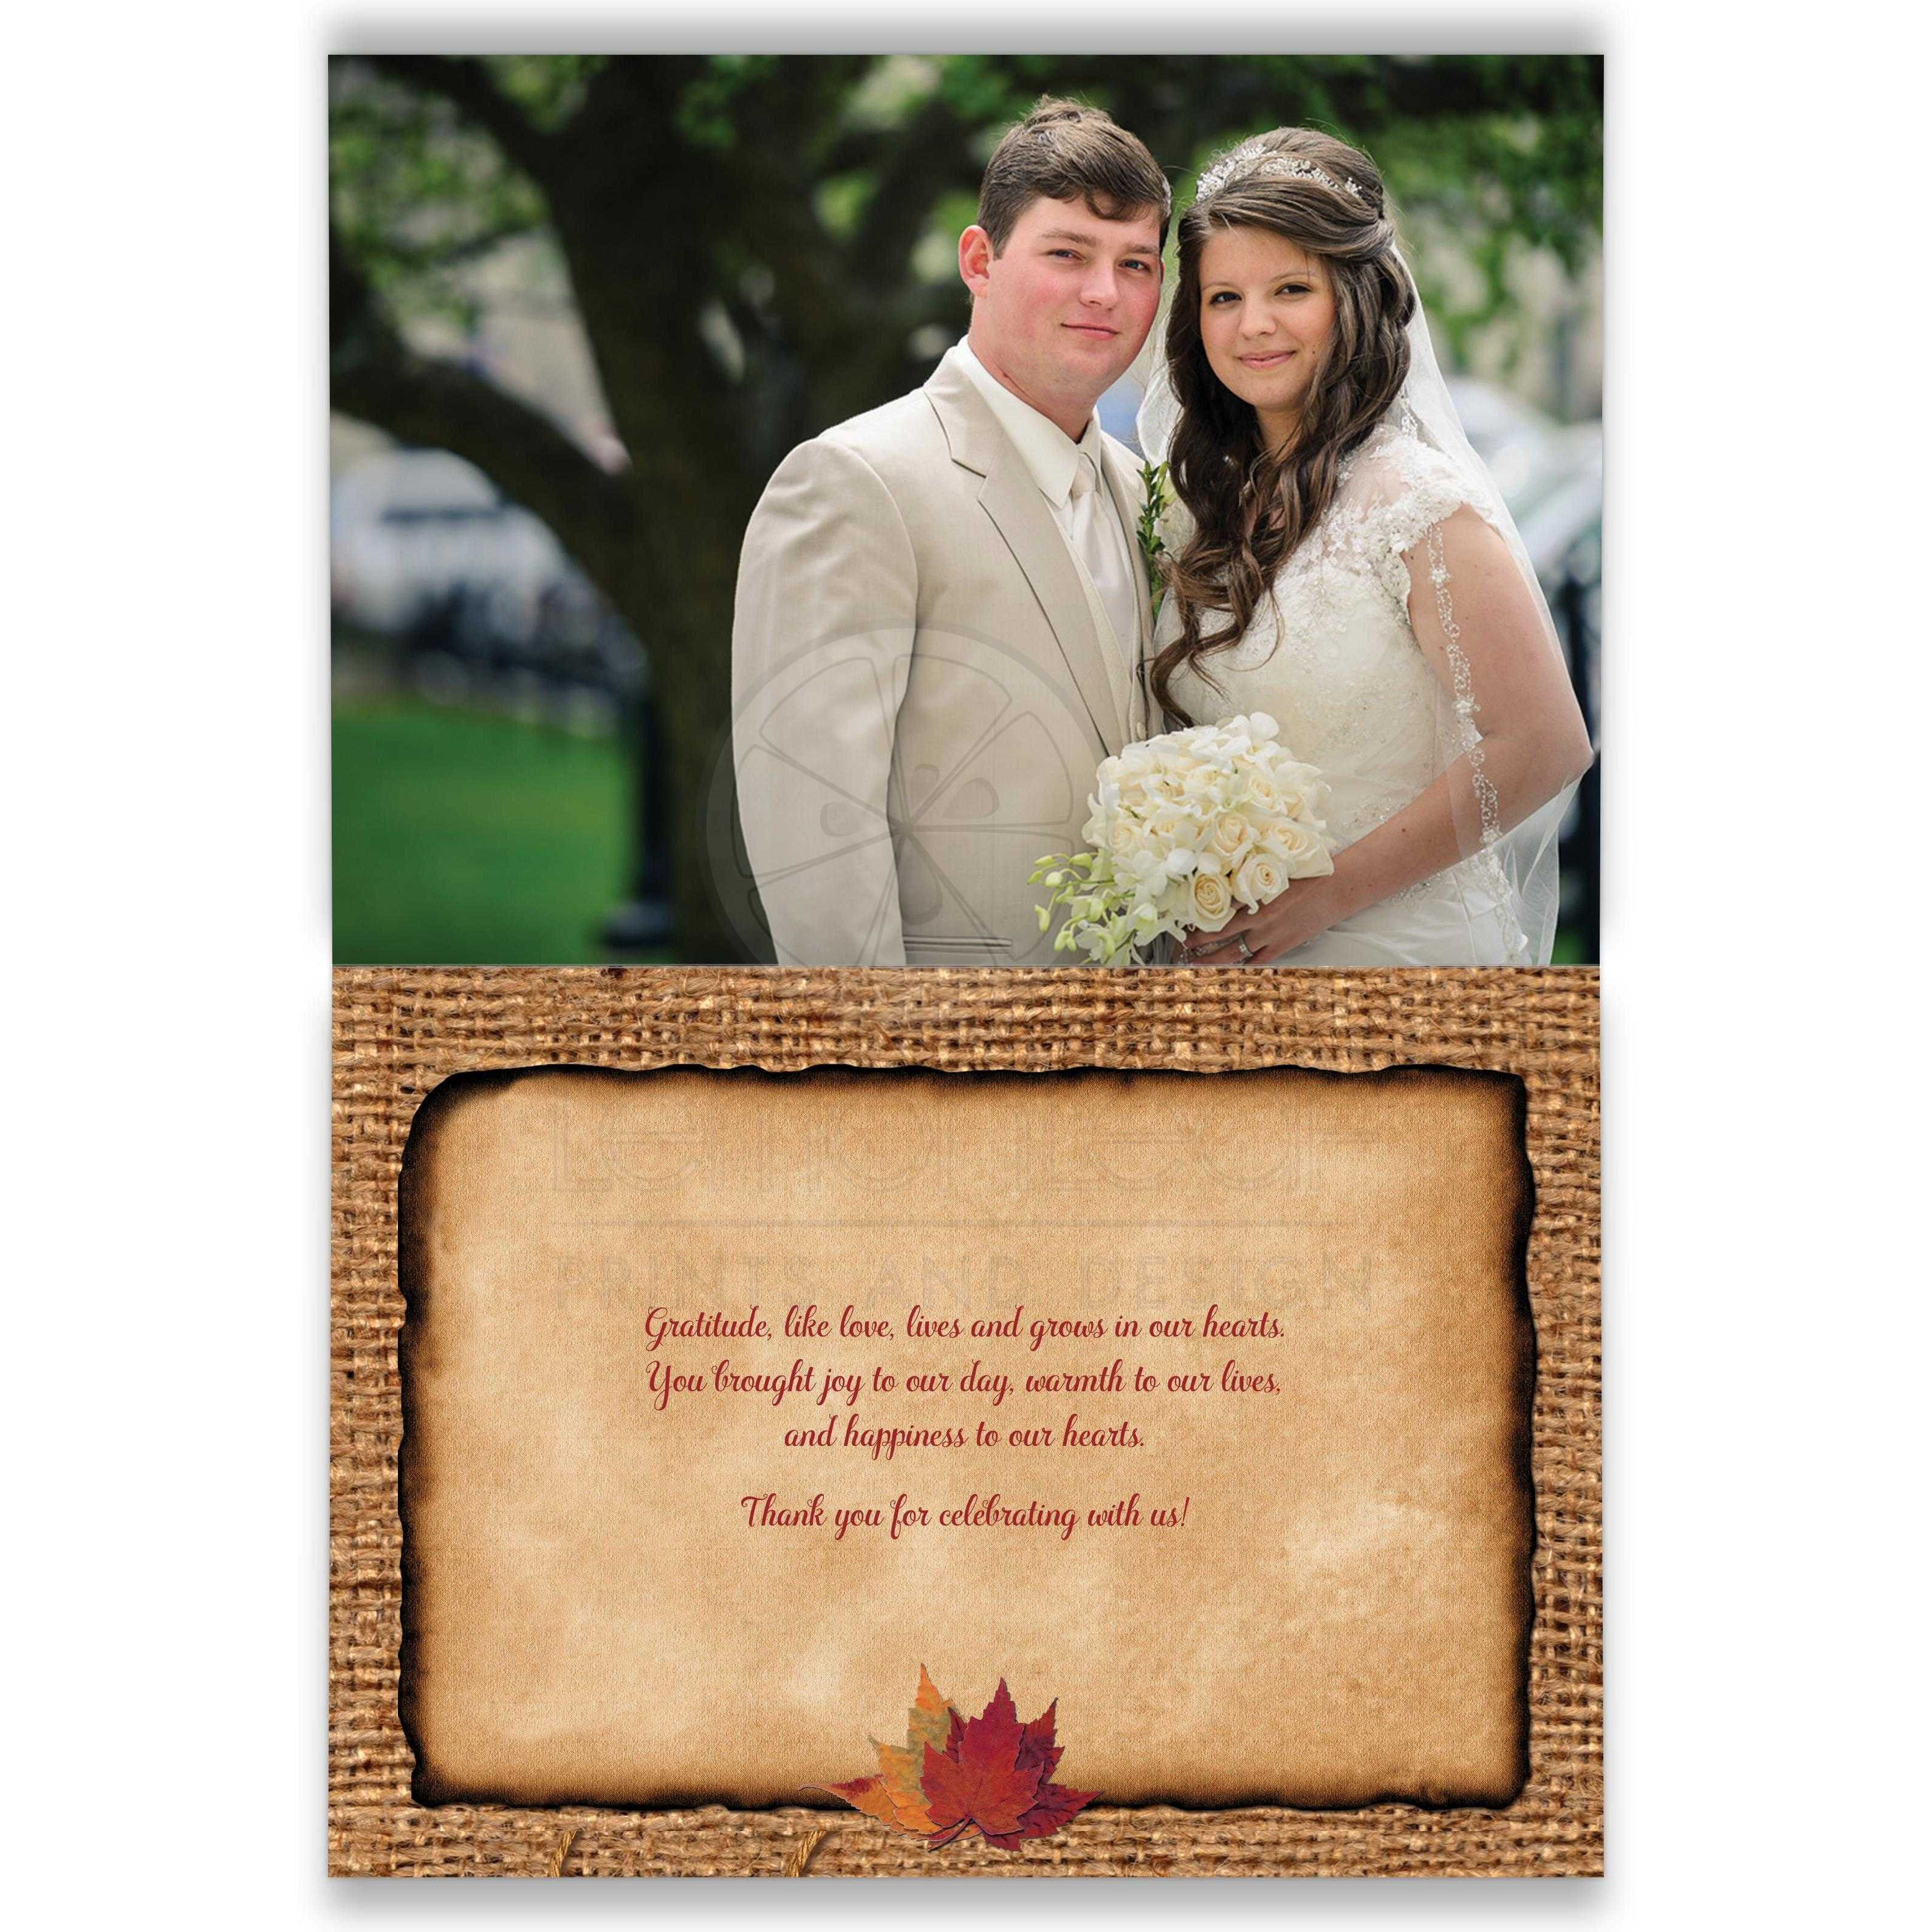 Rustic Burlap Photo Template Wedding Thank You Card With A Burgundy Wine Ribbon Golden